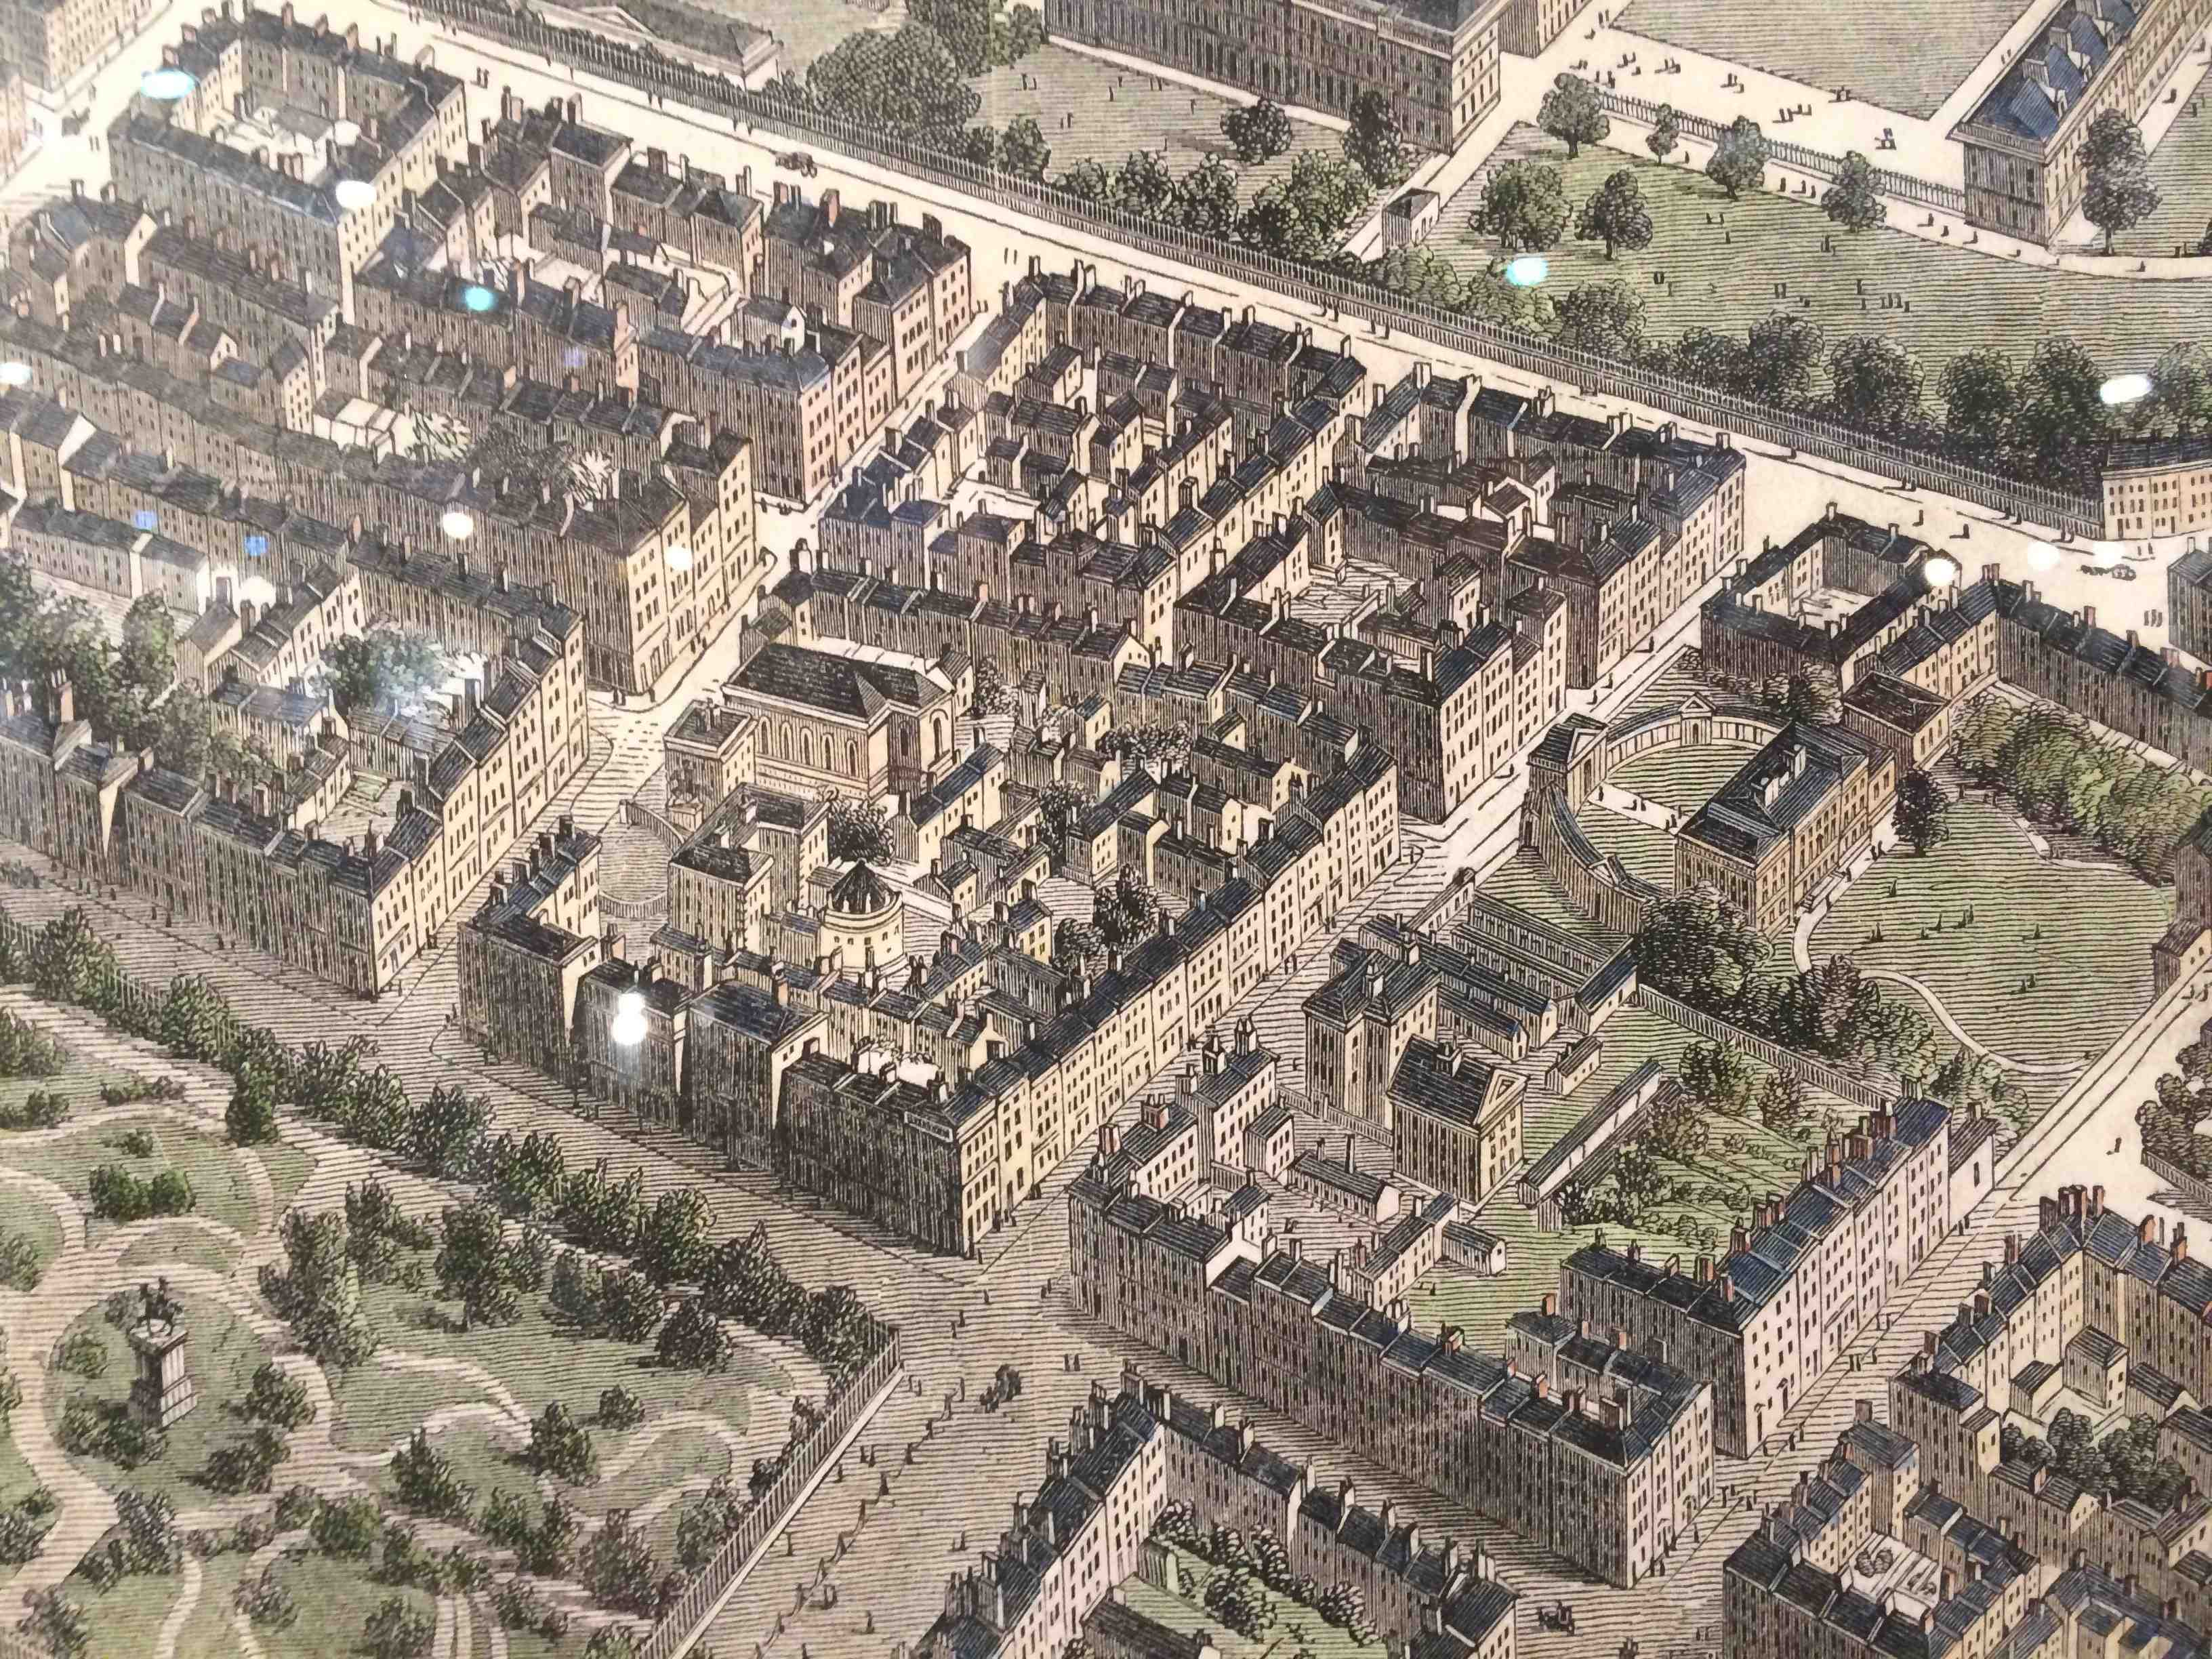 Dawson and Kildare Streets detail from 1846 Birdseye view of Dublin,